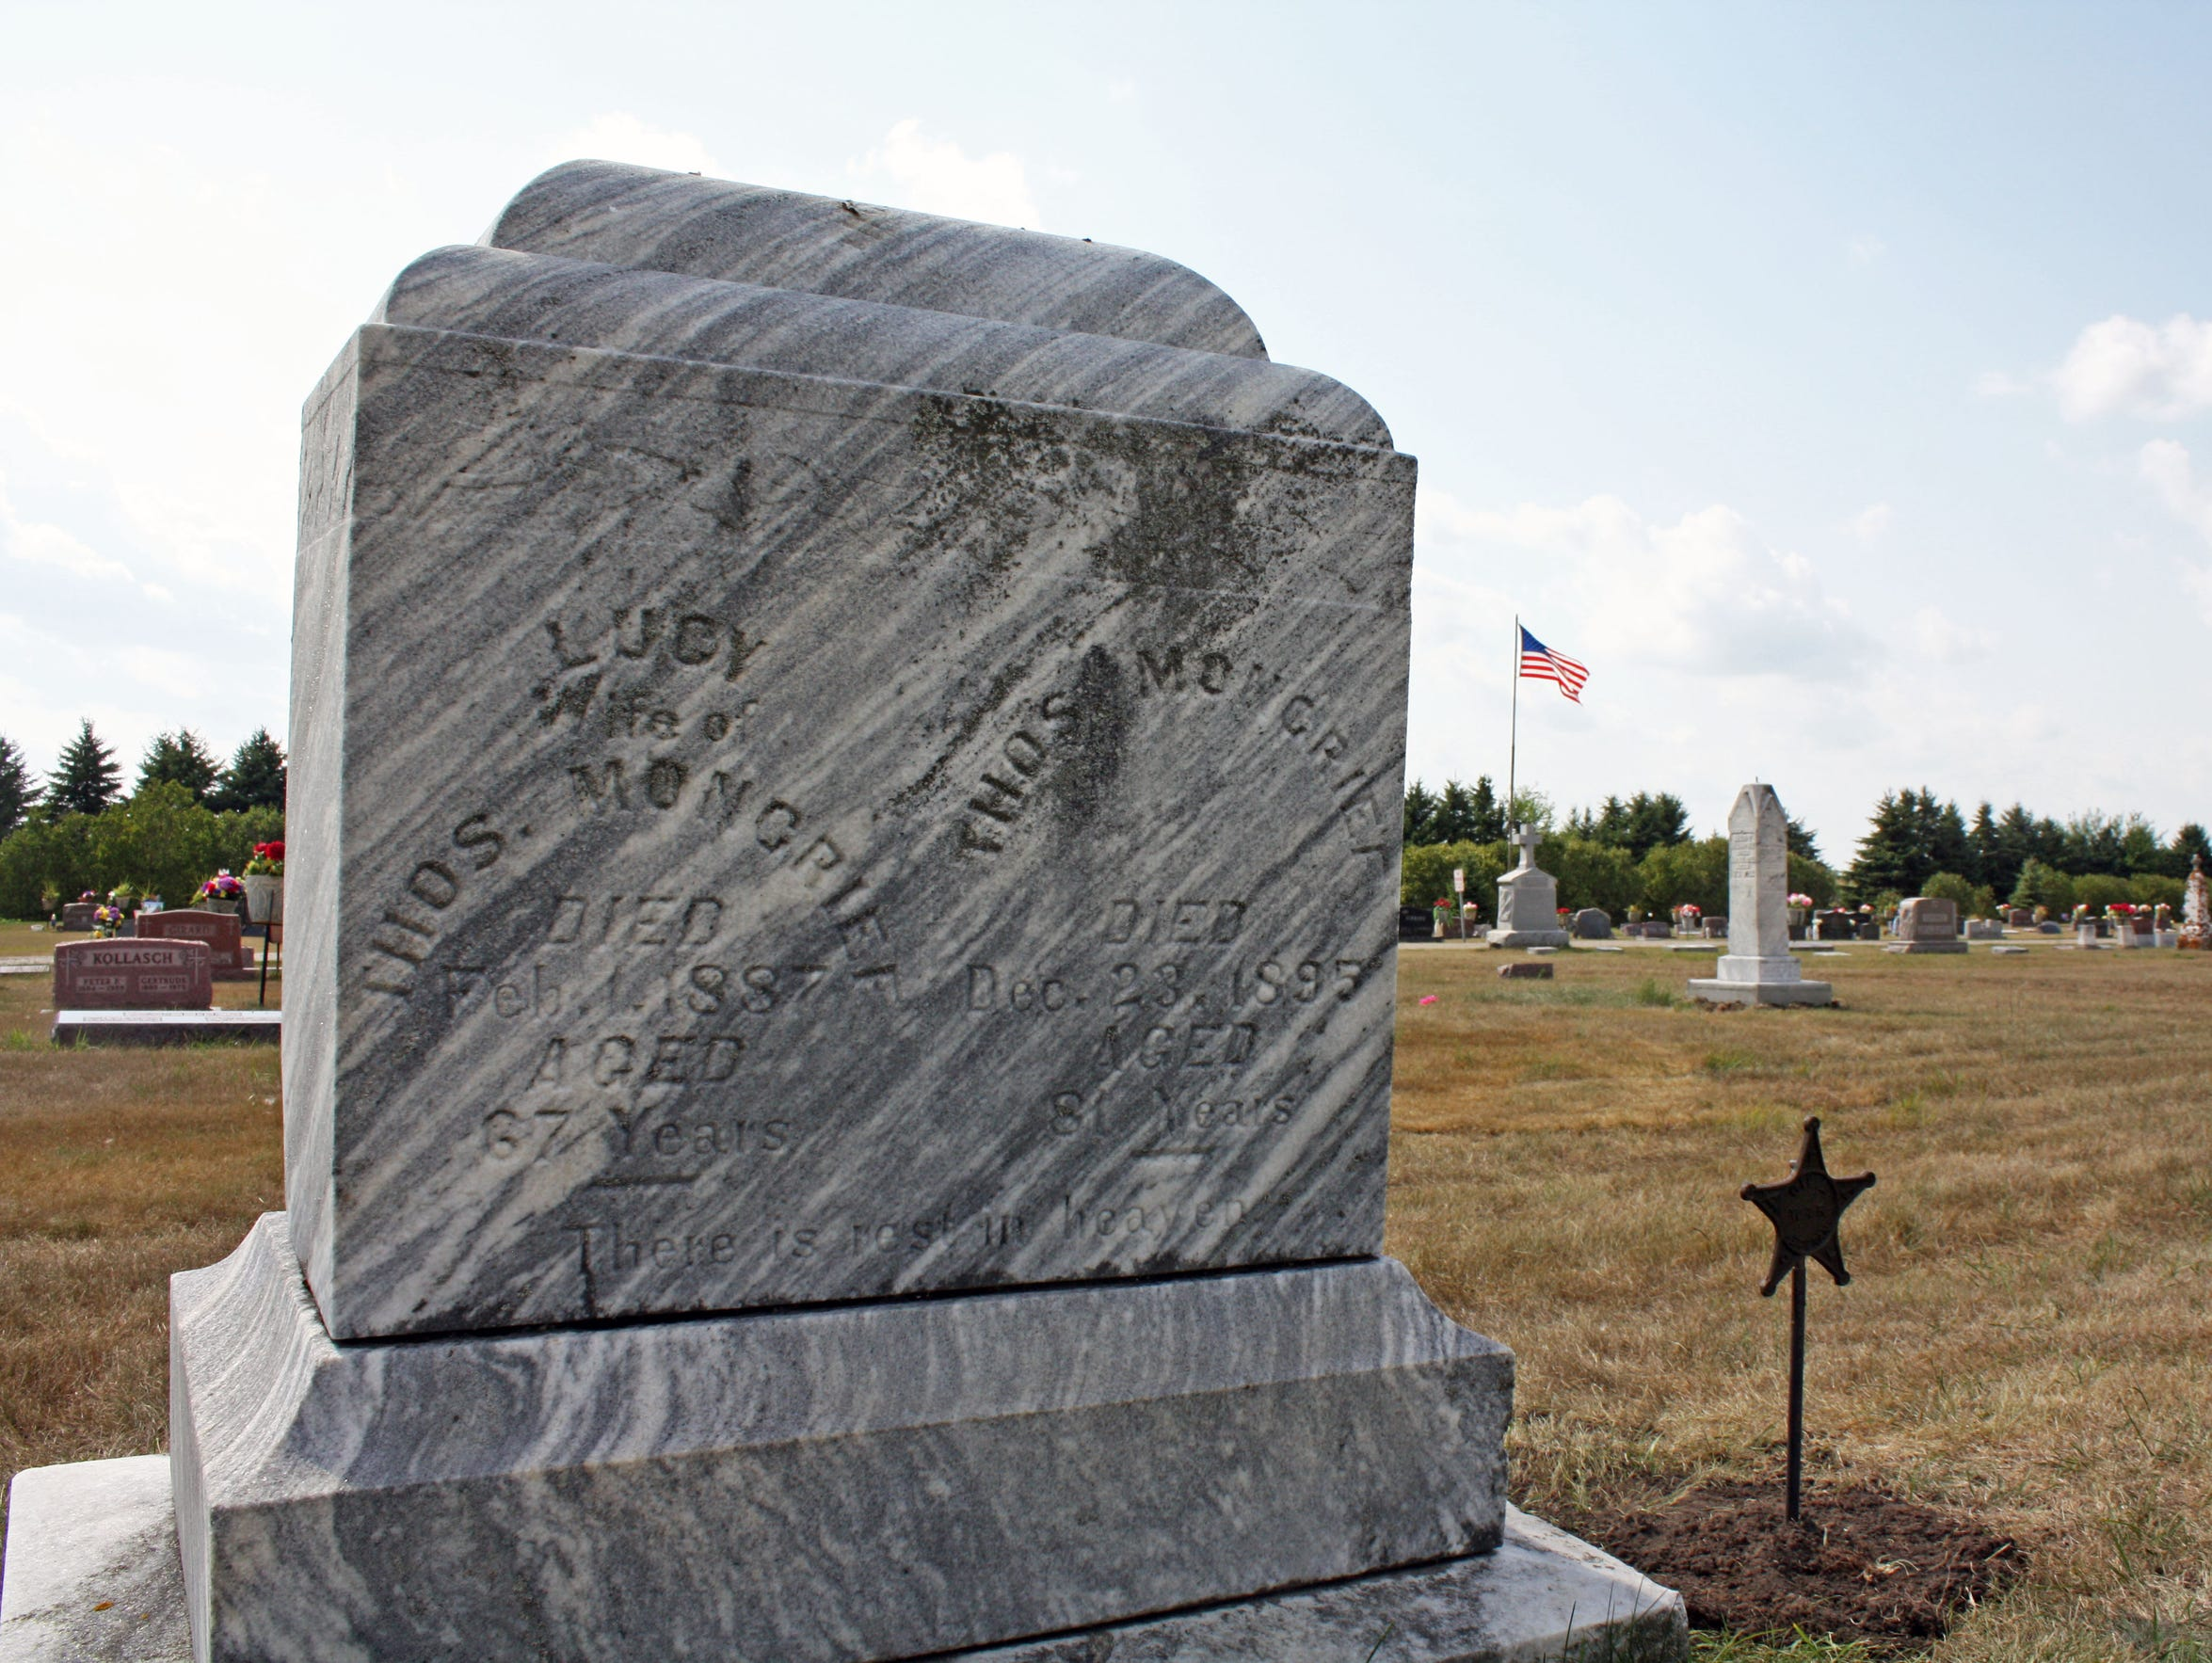 The tombstone of Thomas and Lucy Moncrief in Emmetsburg,